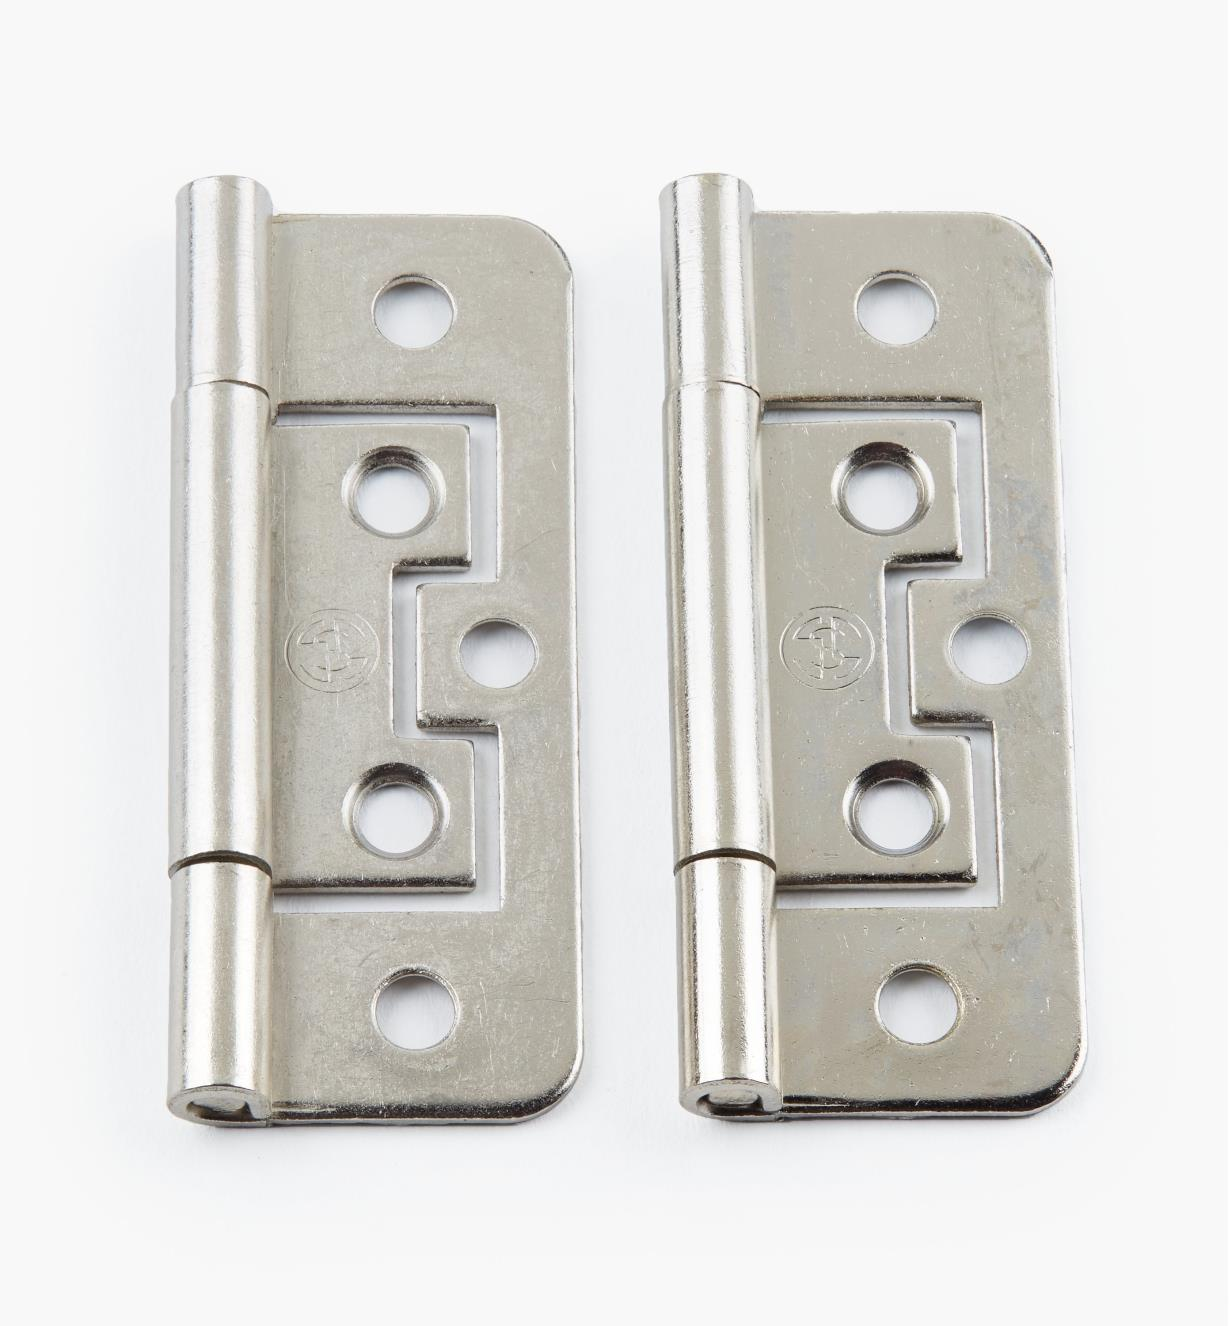 "00H5133 - 2 1/2"" x 3/4"" Nickel Plate Plain-End No-Mortise Hinges, pr"